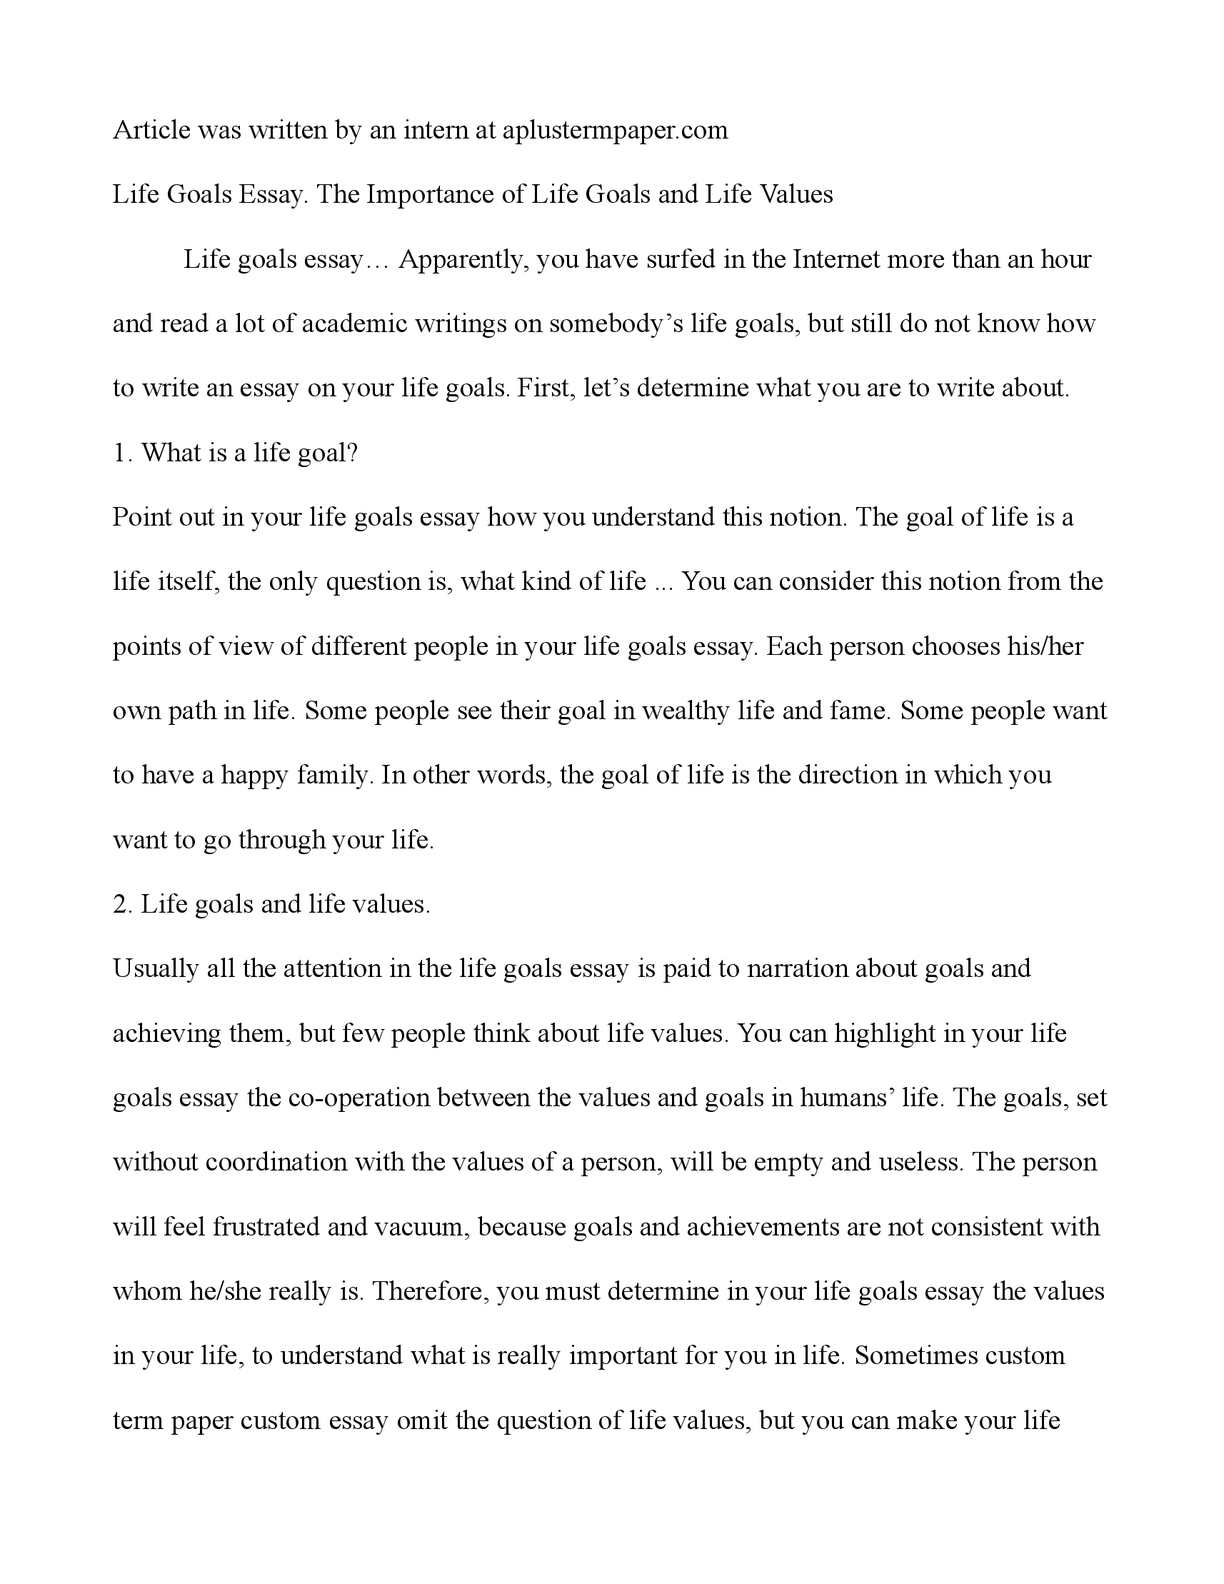 007 Career Goals Essay P1 Fantastic Future Scholarship Business Administration Mba For Fms Full